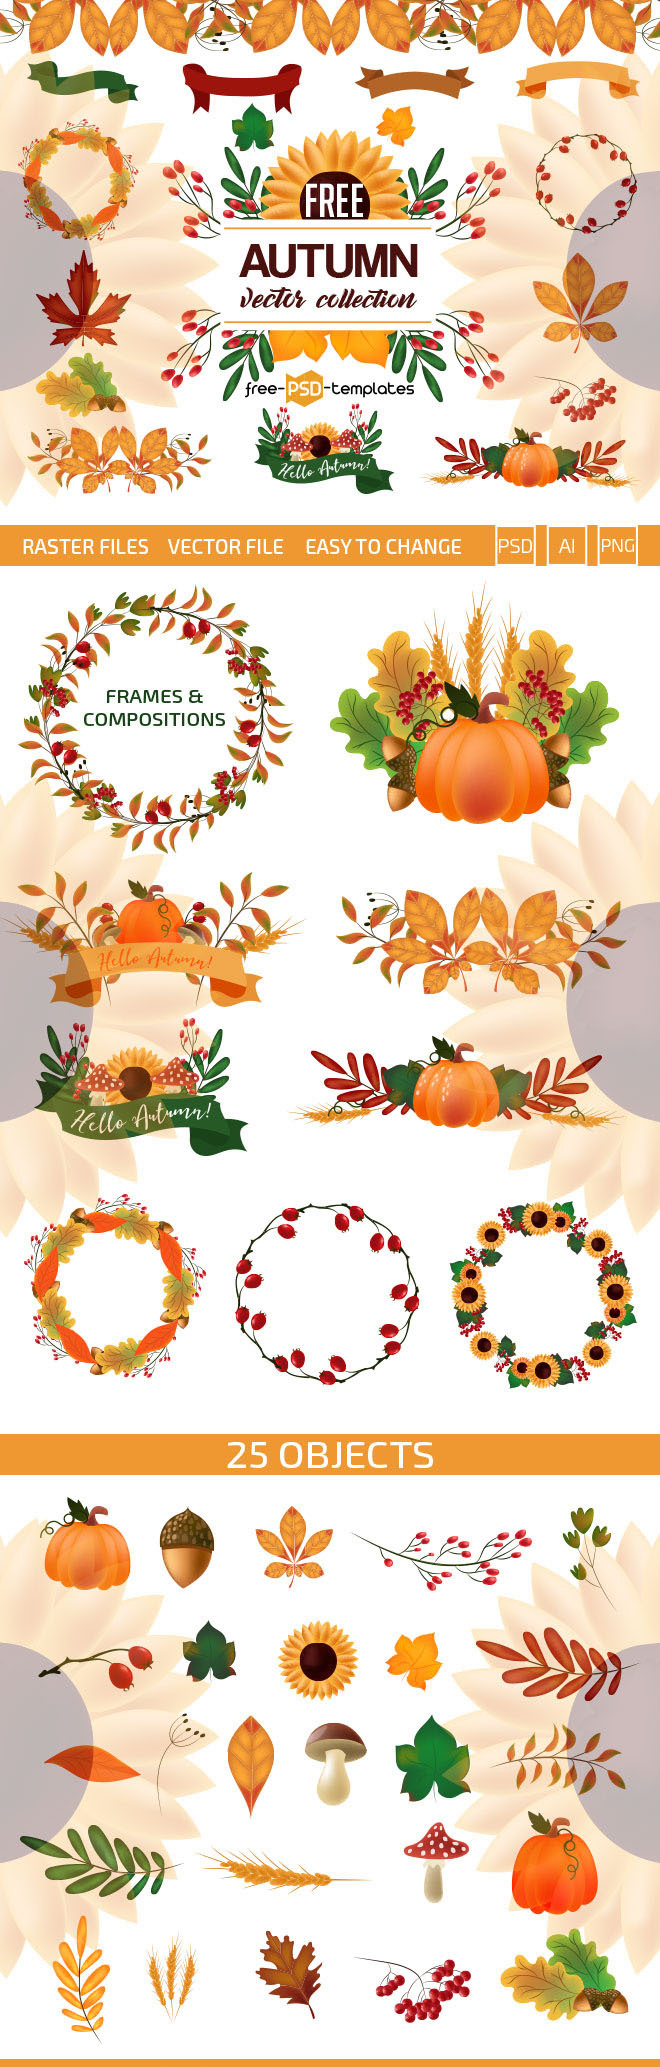 free-autumn-vector-collection